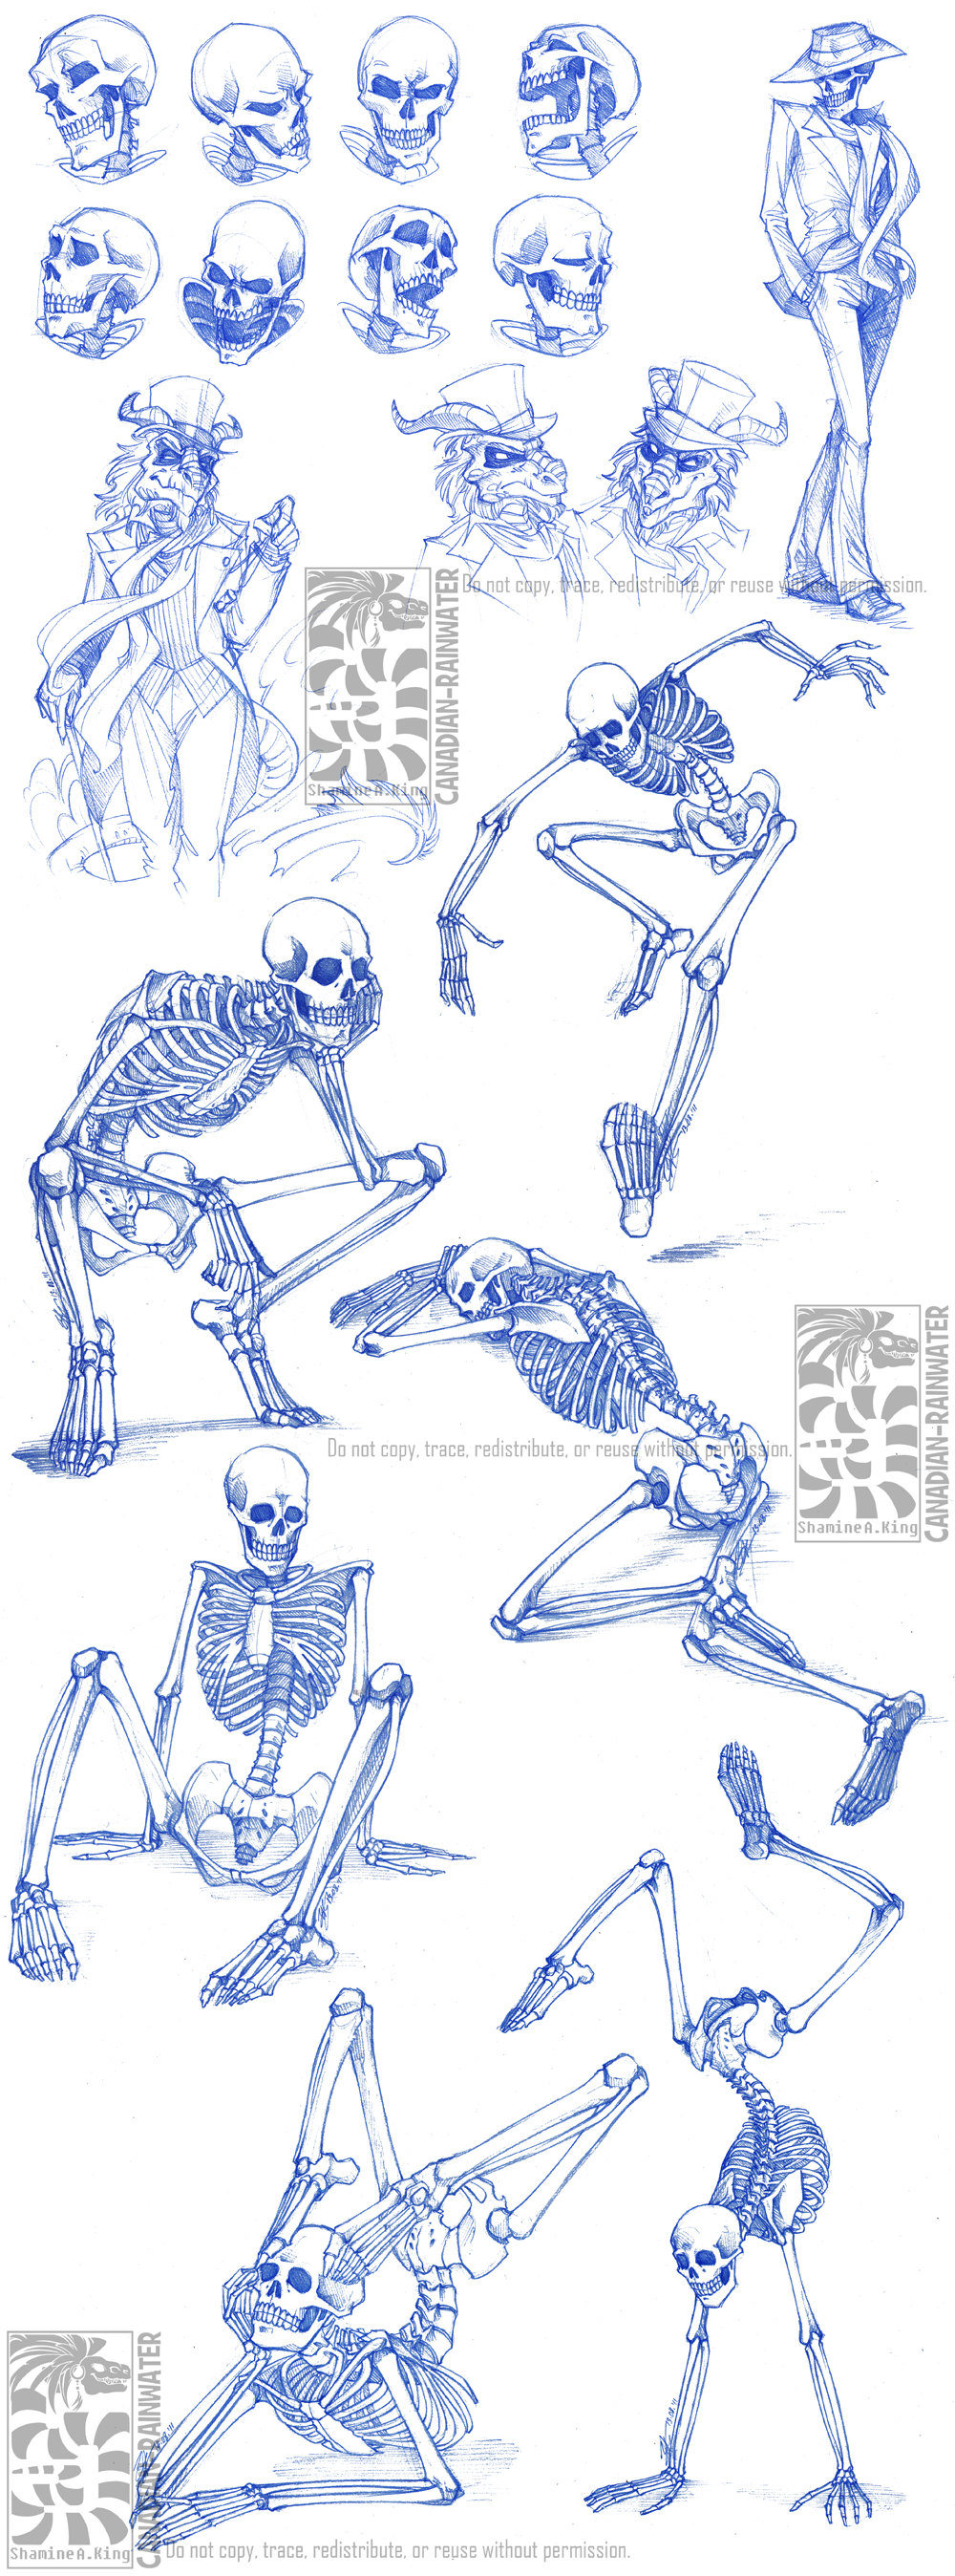 Character Design Courses Canada : Sak s characters comics and animations honour amongst